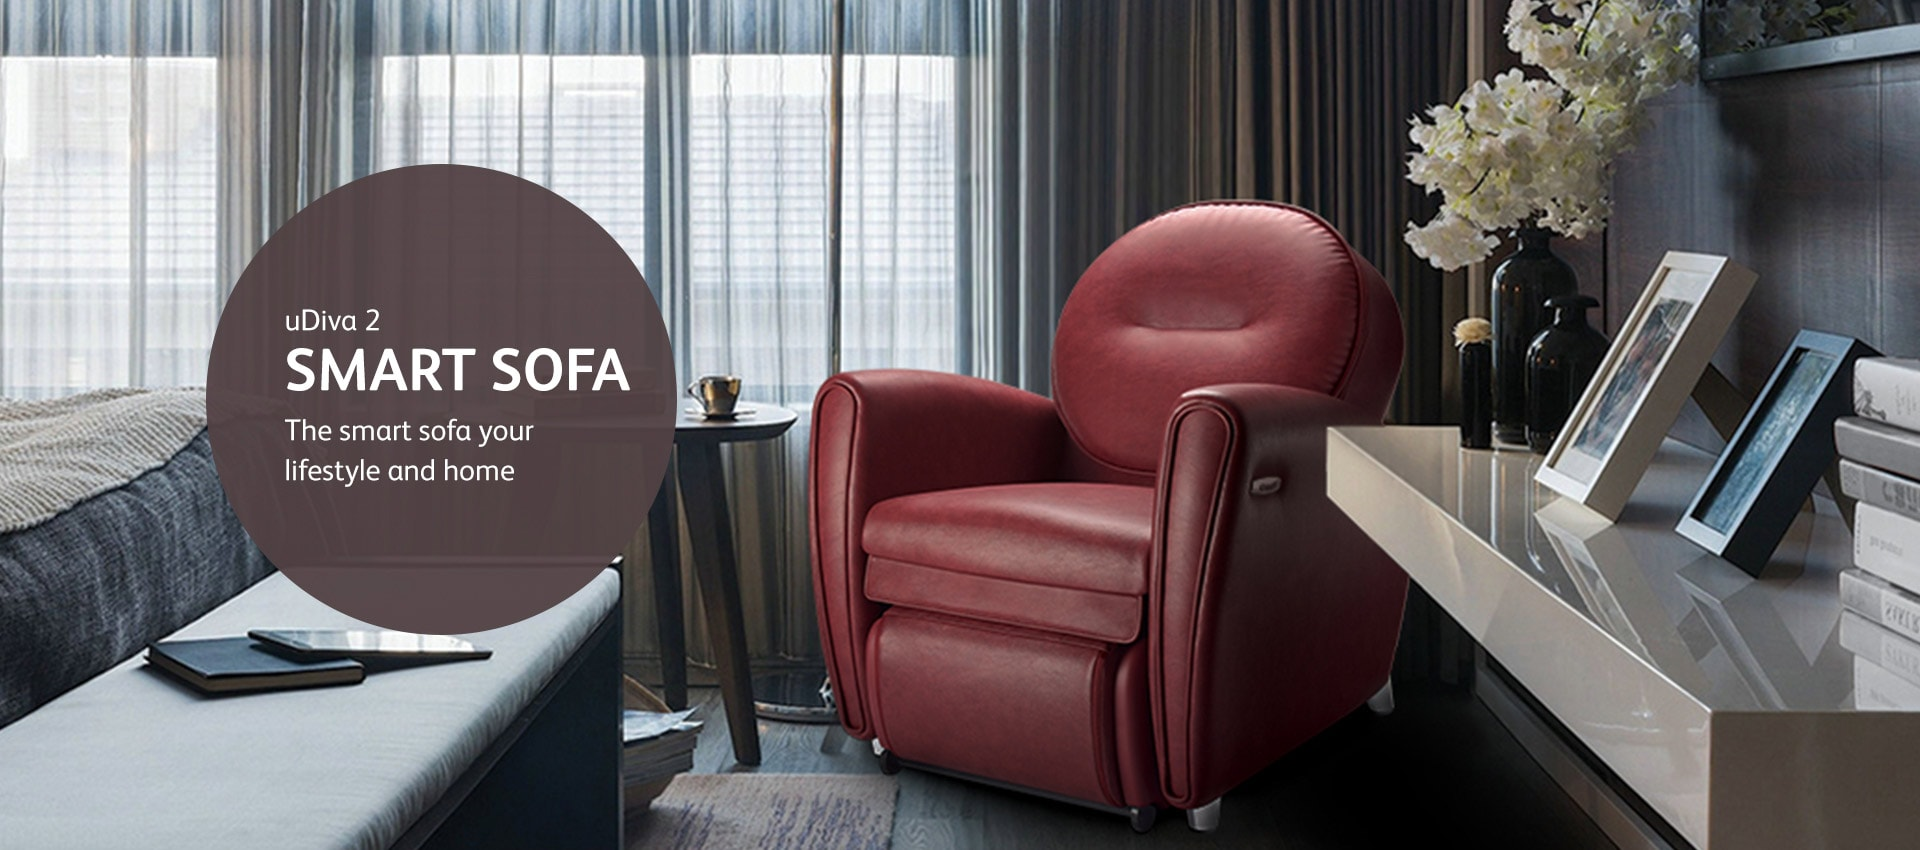 Udiva2 Massage Chair Smart Sofa En